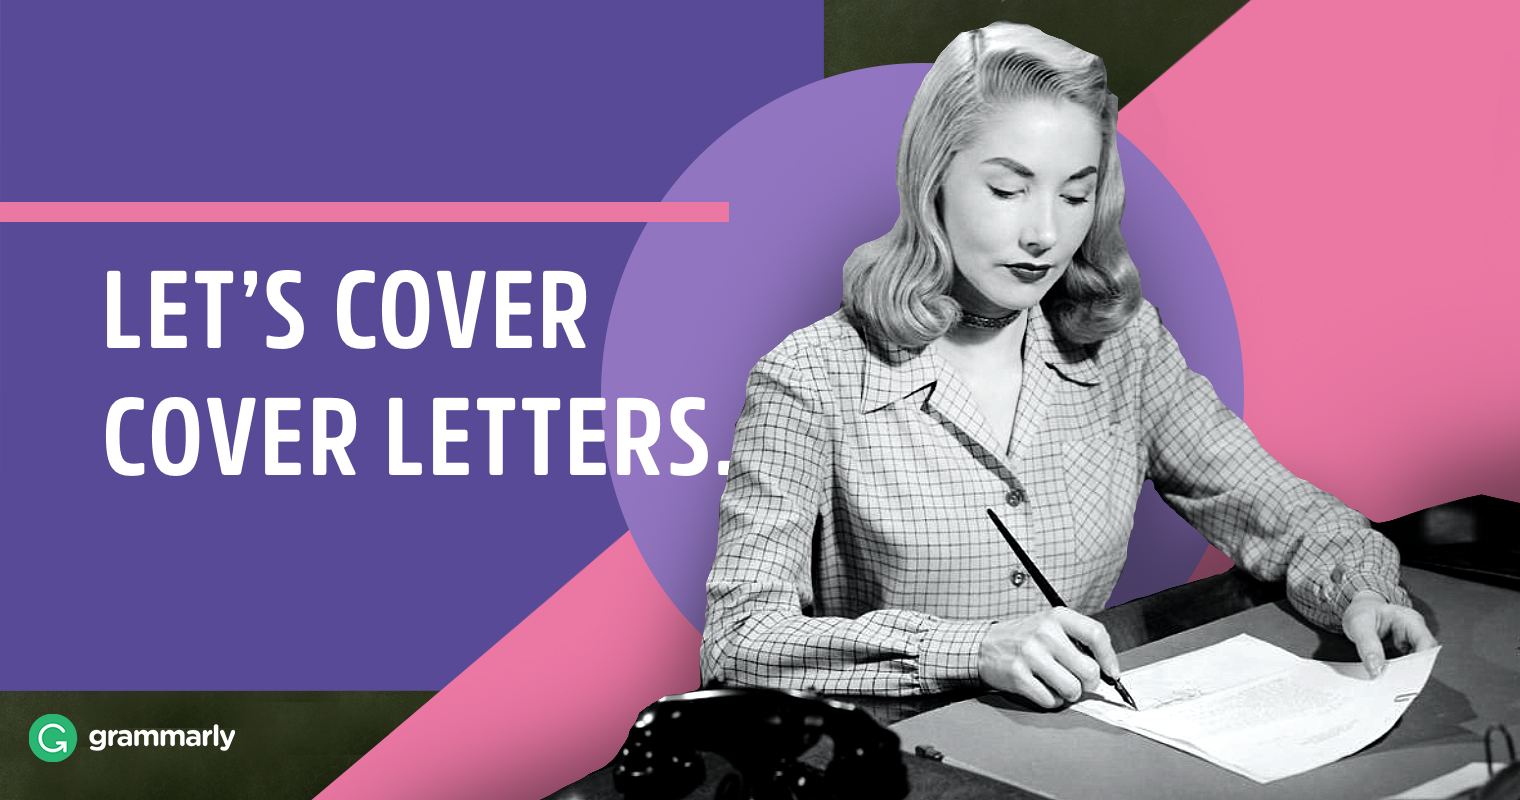 How To Write A Cover Letter: Parts, Process, And Pro Tips